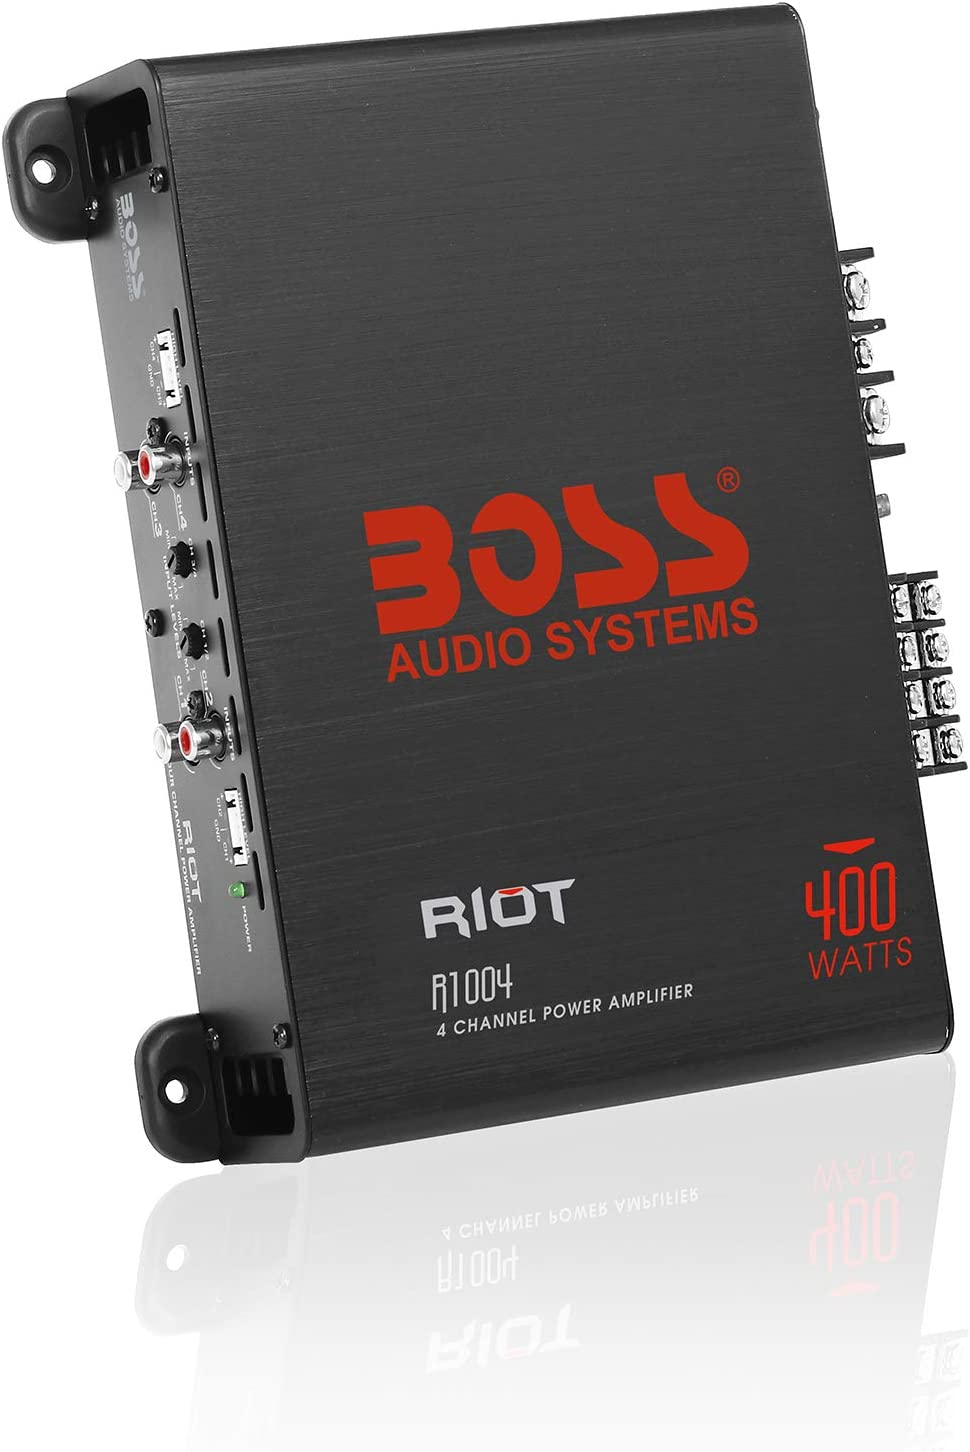 Amazon.com: BOSS Audio Systems R1004 4 Channel Car Amplifier – Riot Series,  400 Watts, Full Range, Class A/B, 2 Ohm Stable, IC (Integrated Circuit)  Great for Car Speakers and Car Stereos: Car Electronics